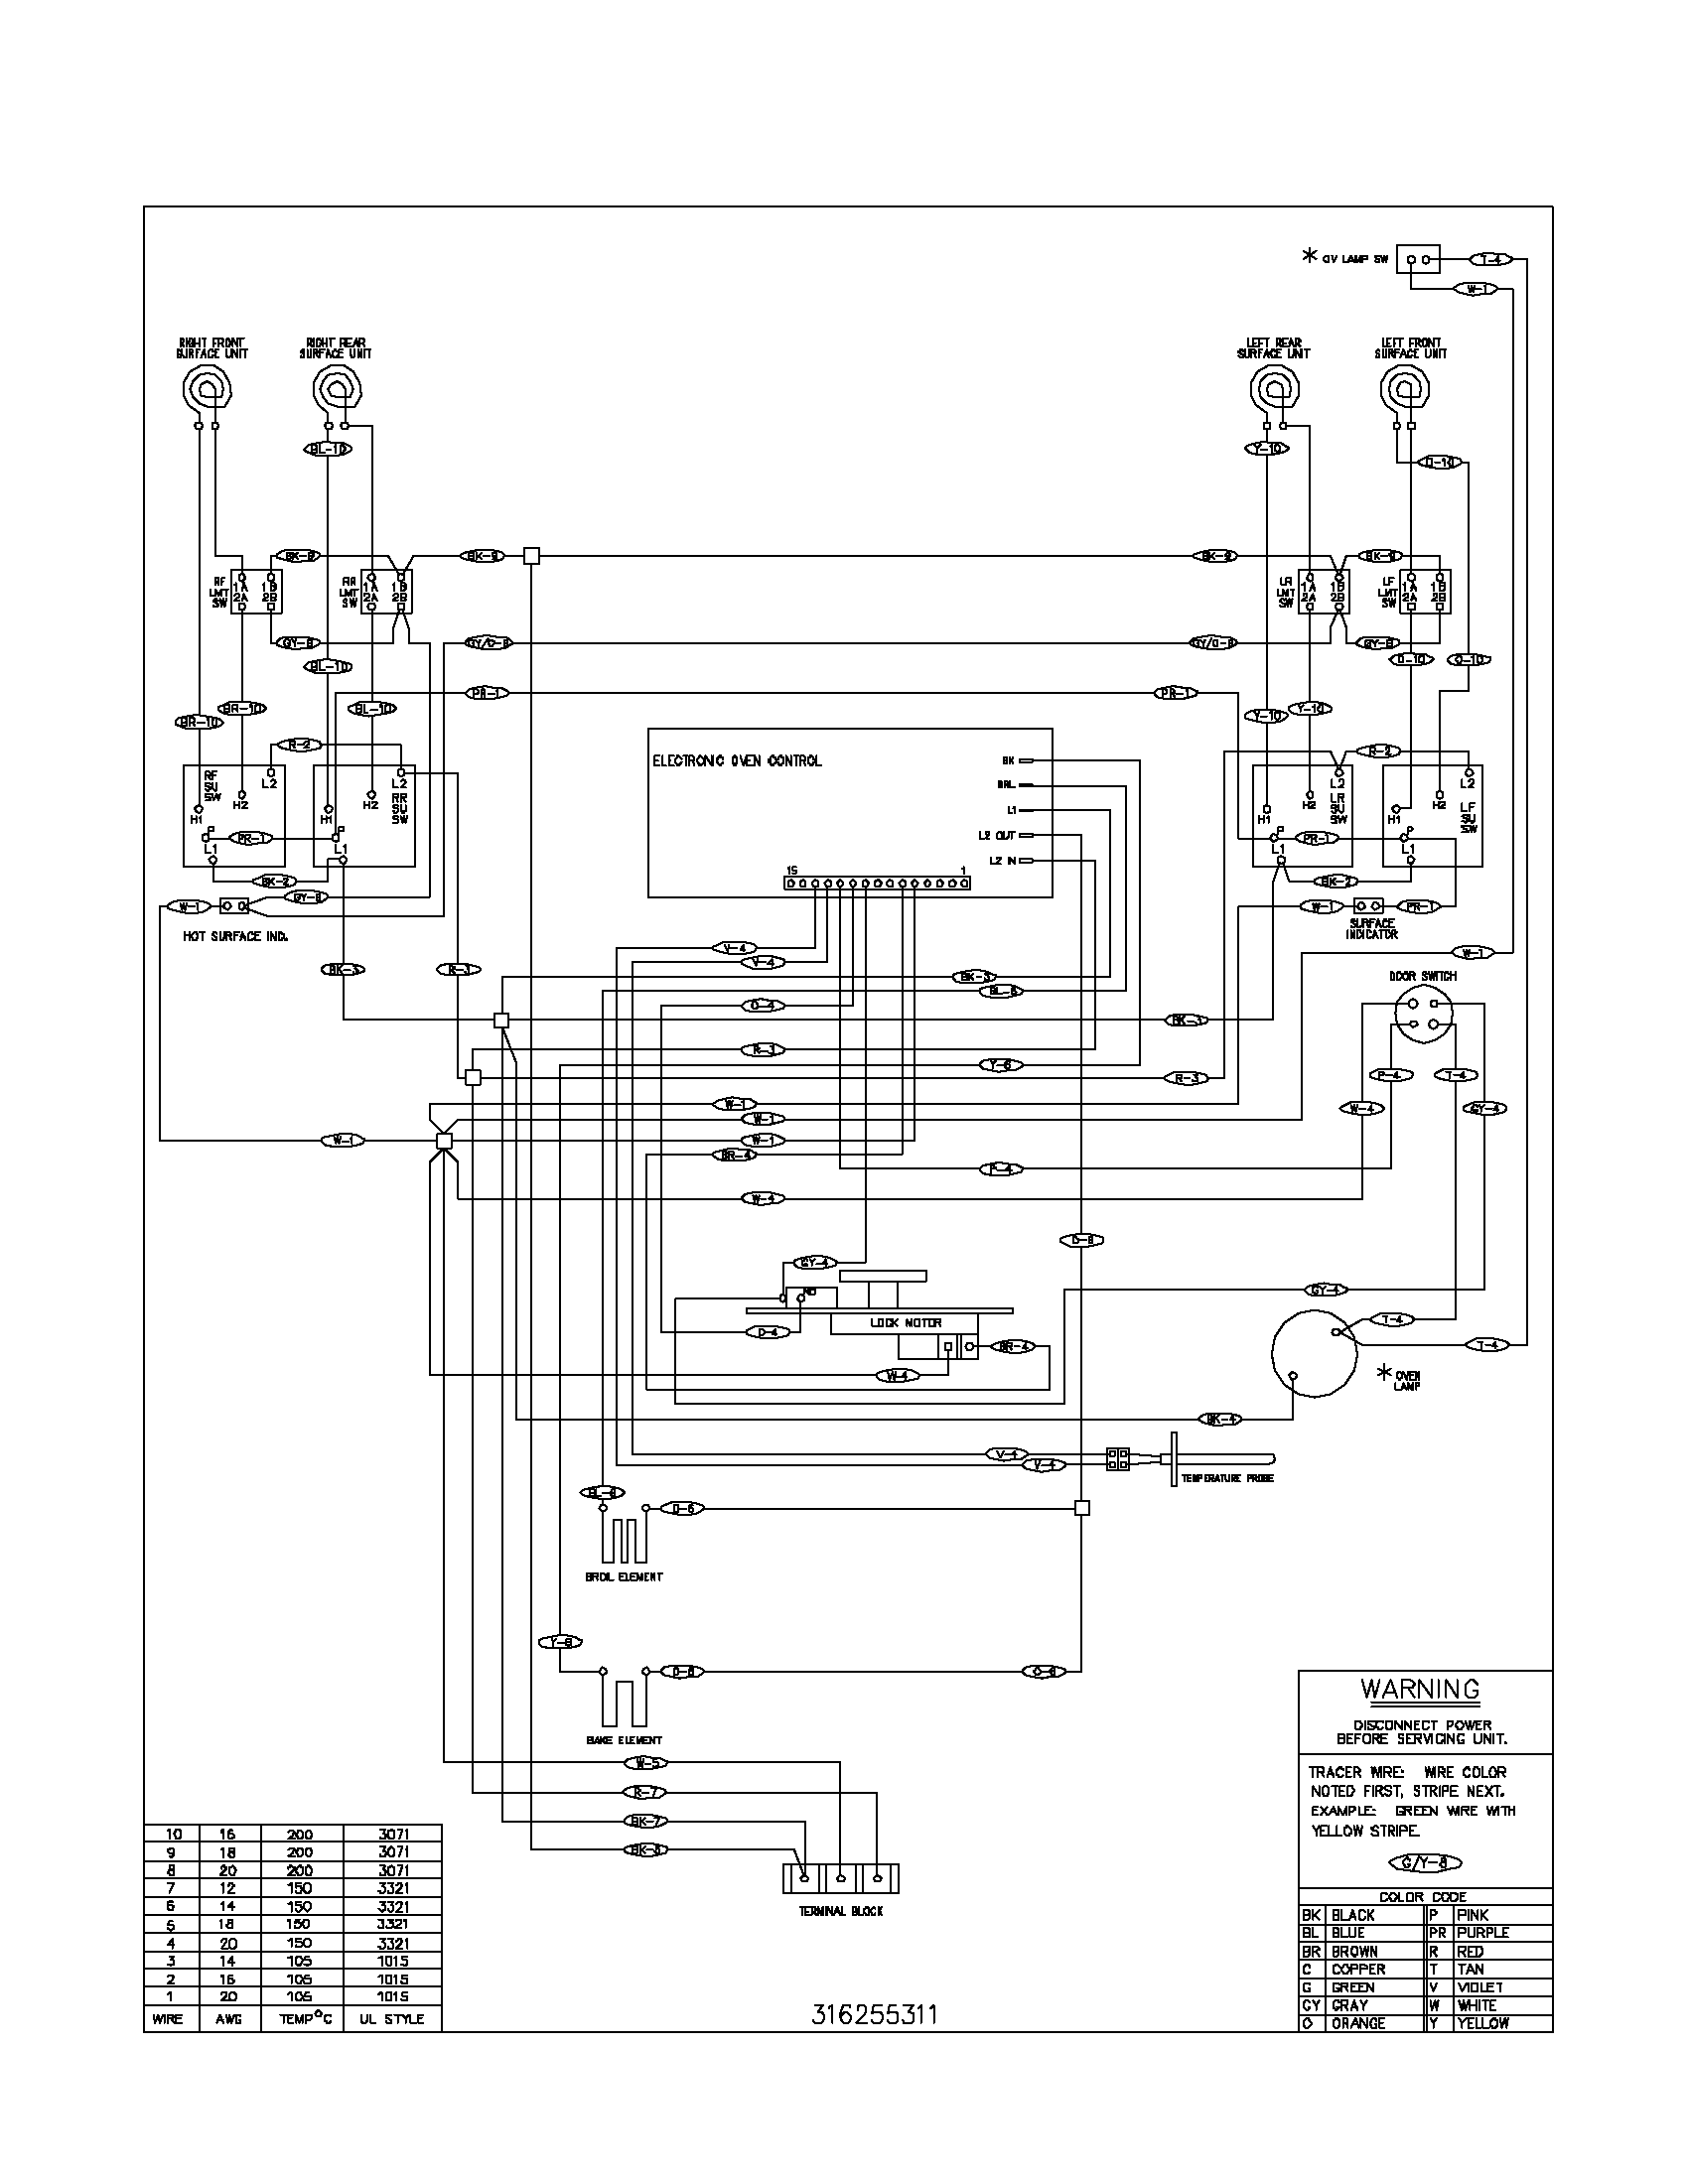 wiring diagram parts kenmore electric range wiring diagram kenmore wiring diagrams  at gsmx.co